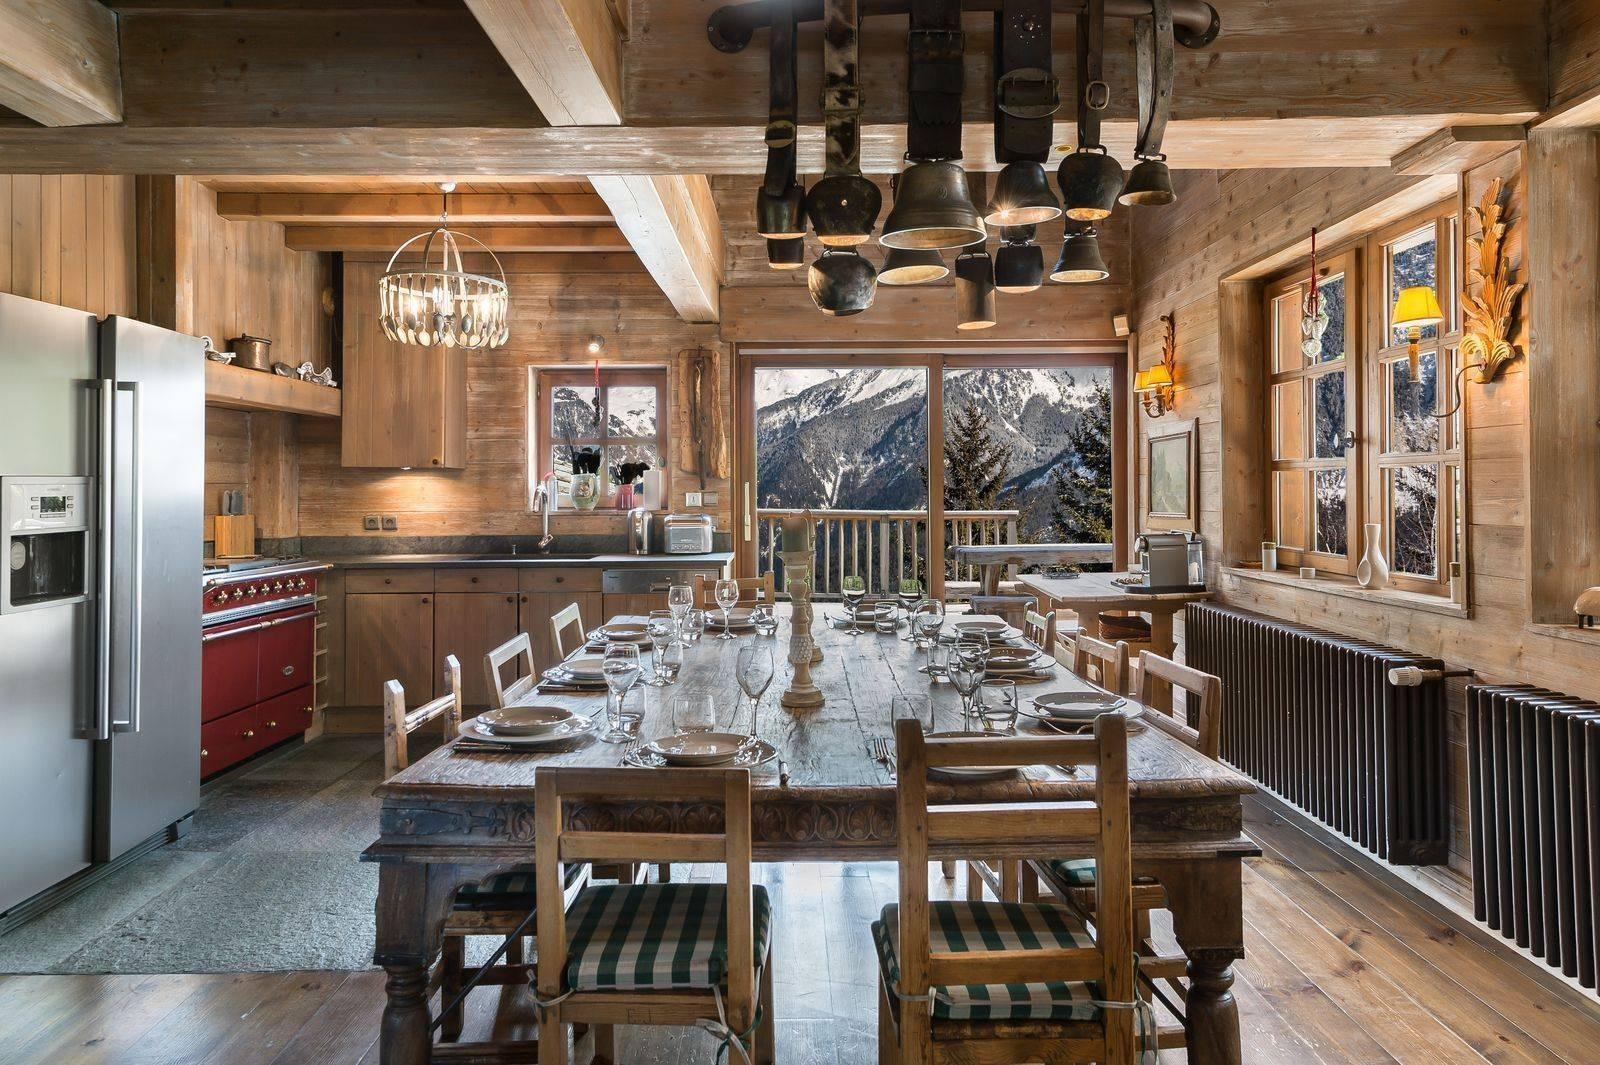 Courchevel 1550 Location Chalet Luxe Tazoy Salle A Manger